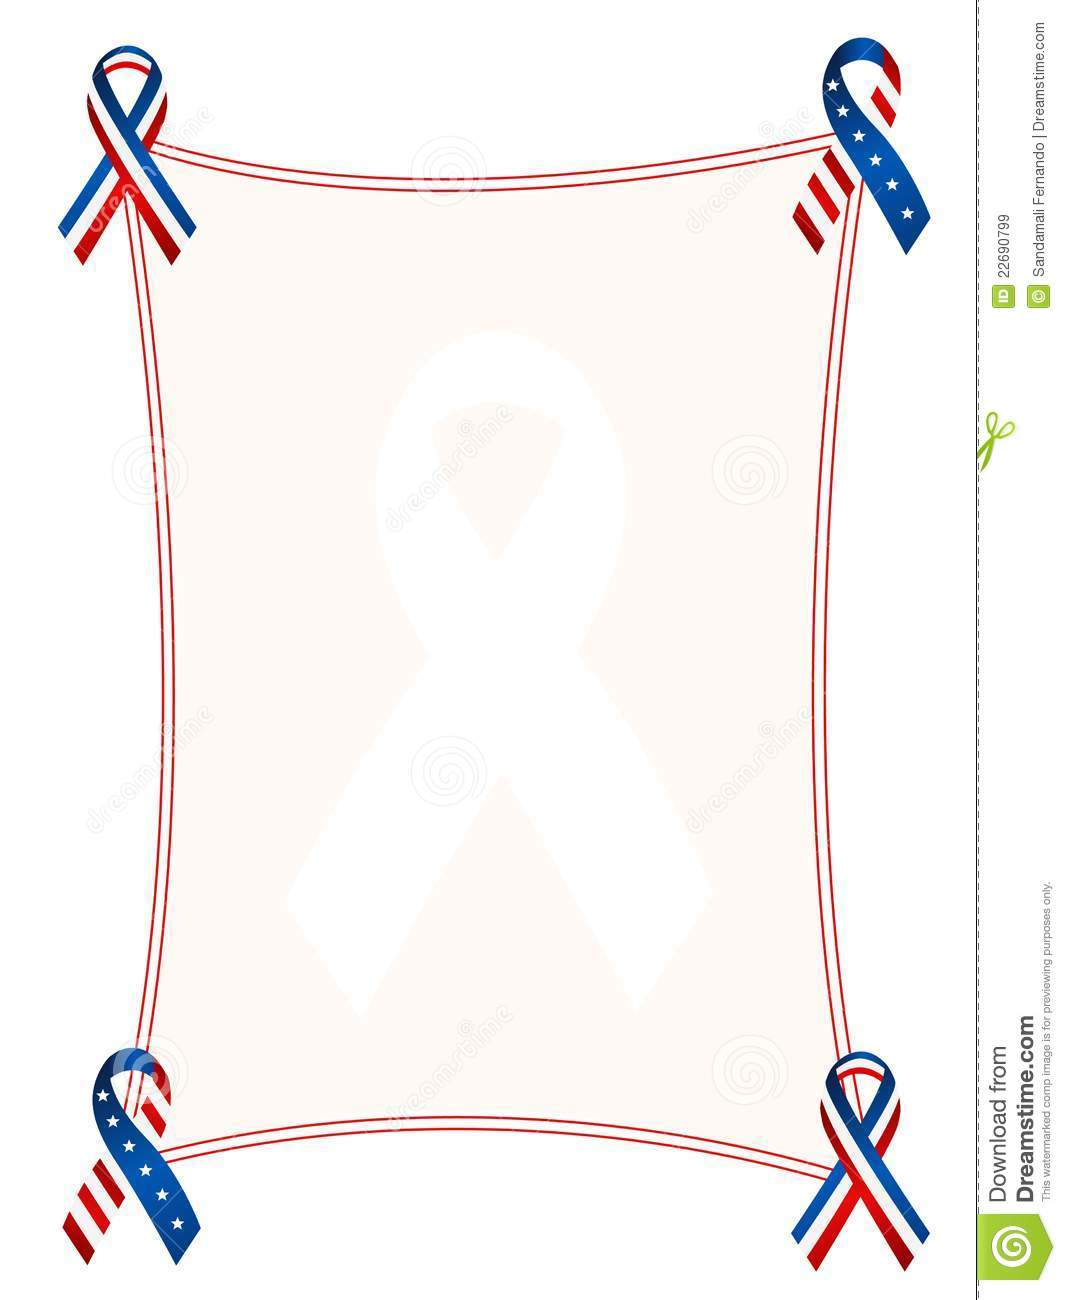 Blue and red patriotic stars and stripes border with ribbons.